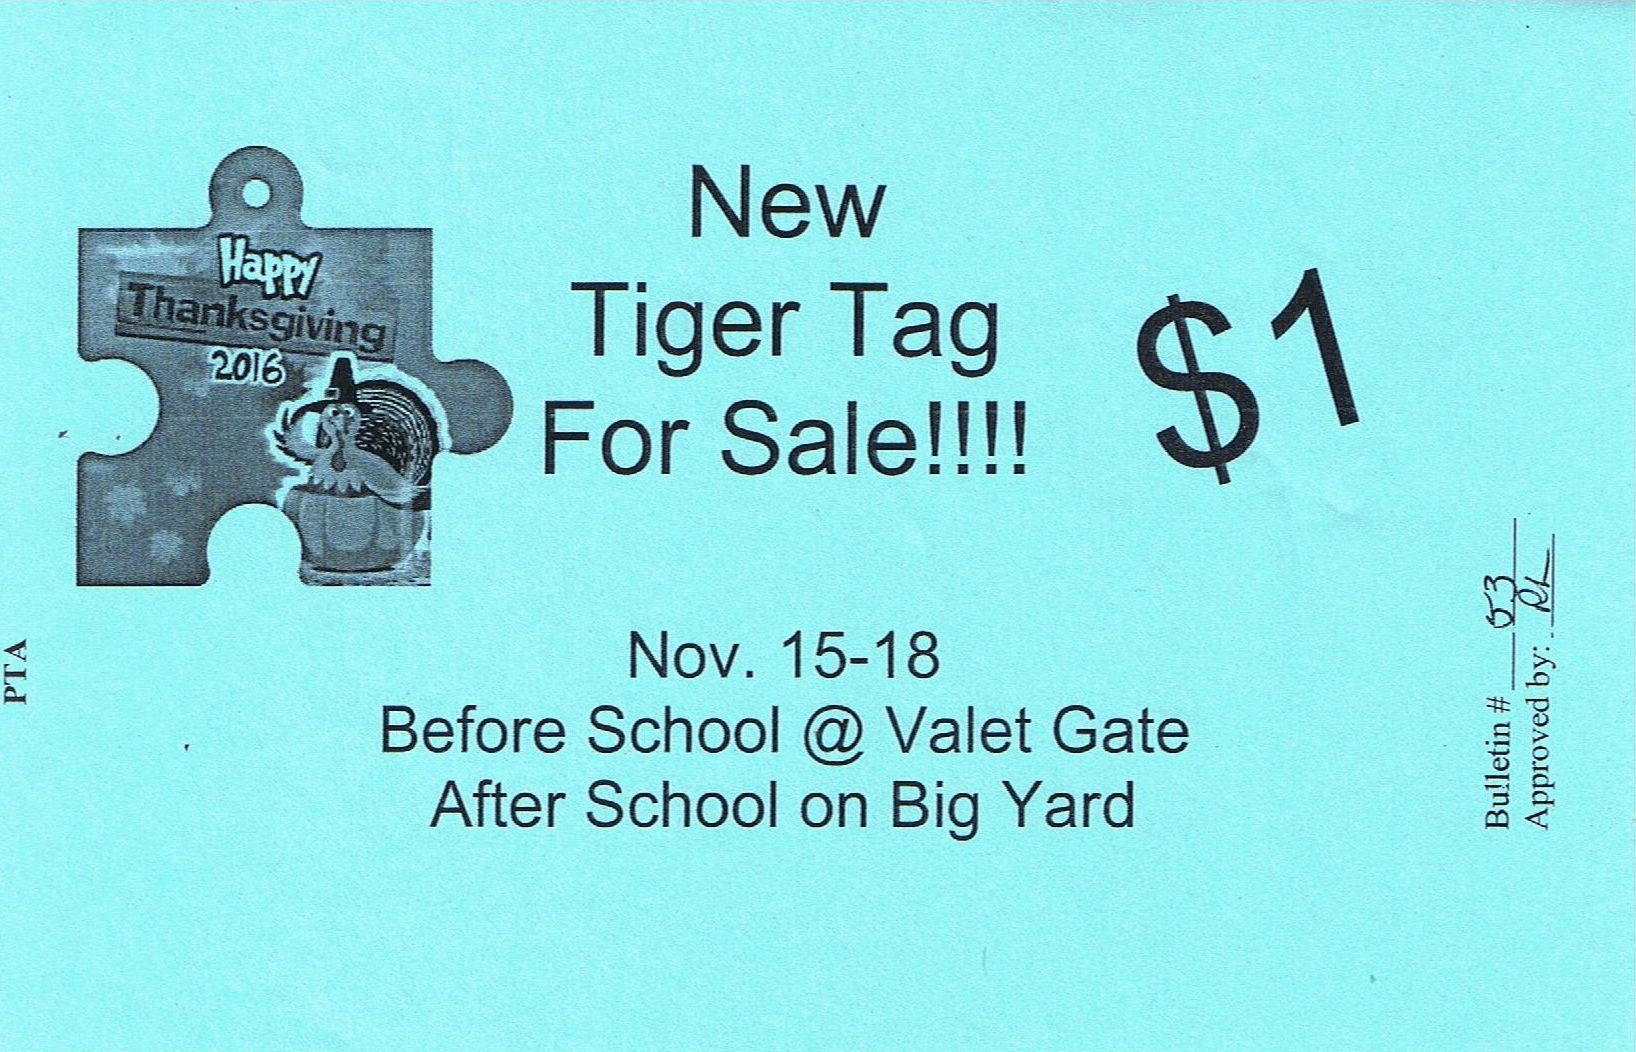 tiger-tag-sale-nov